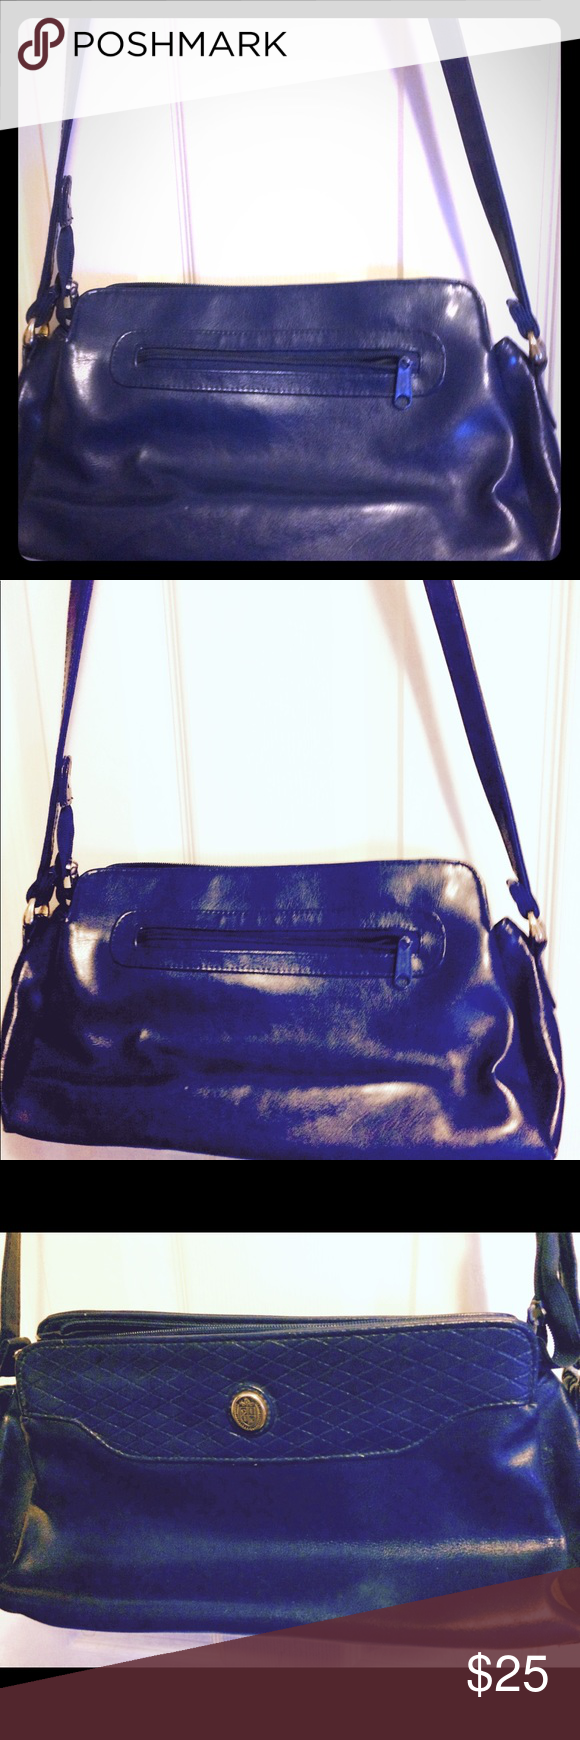 Pocketbook Very nice great condition blue all leather purse. Bags Shoulder Bags